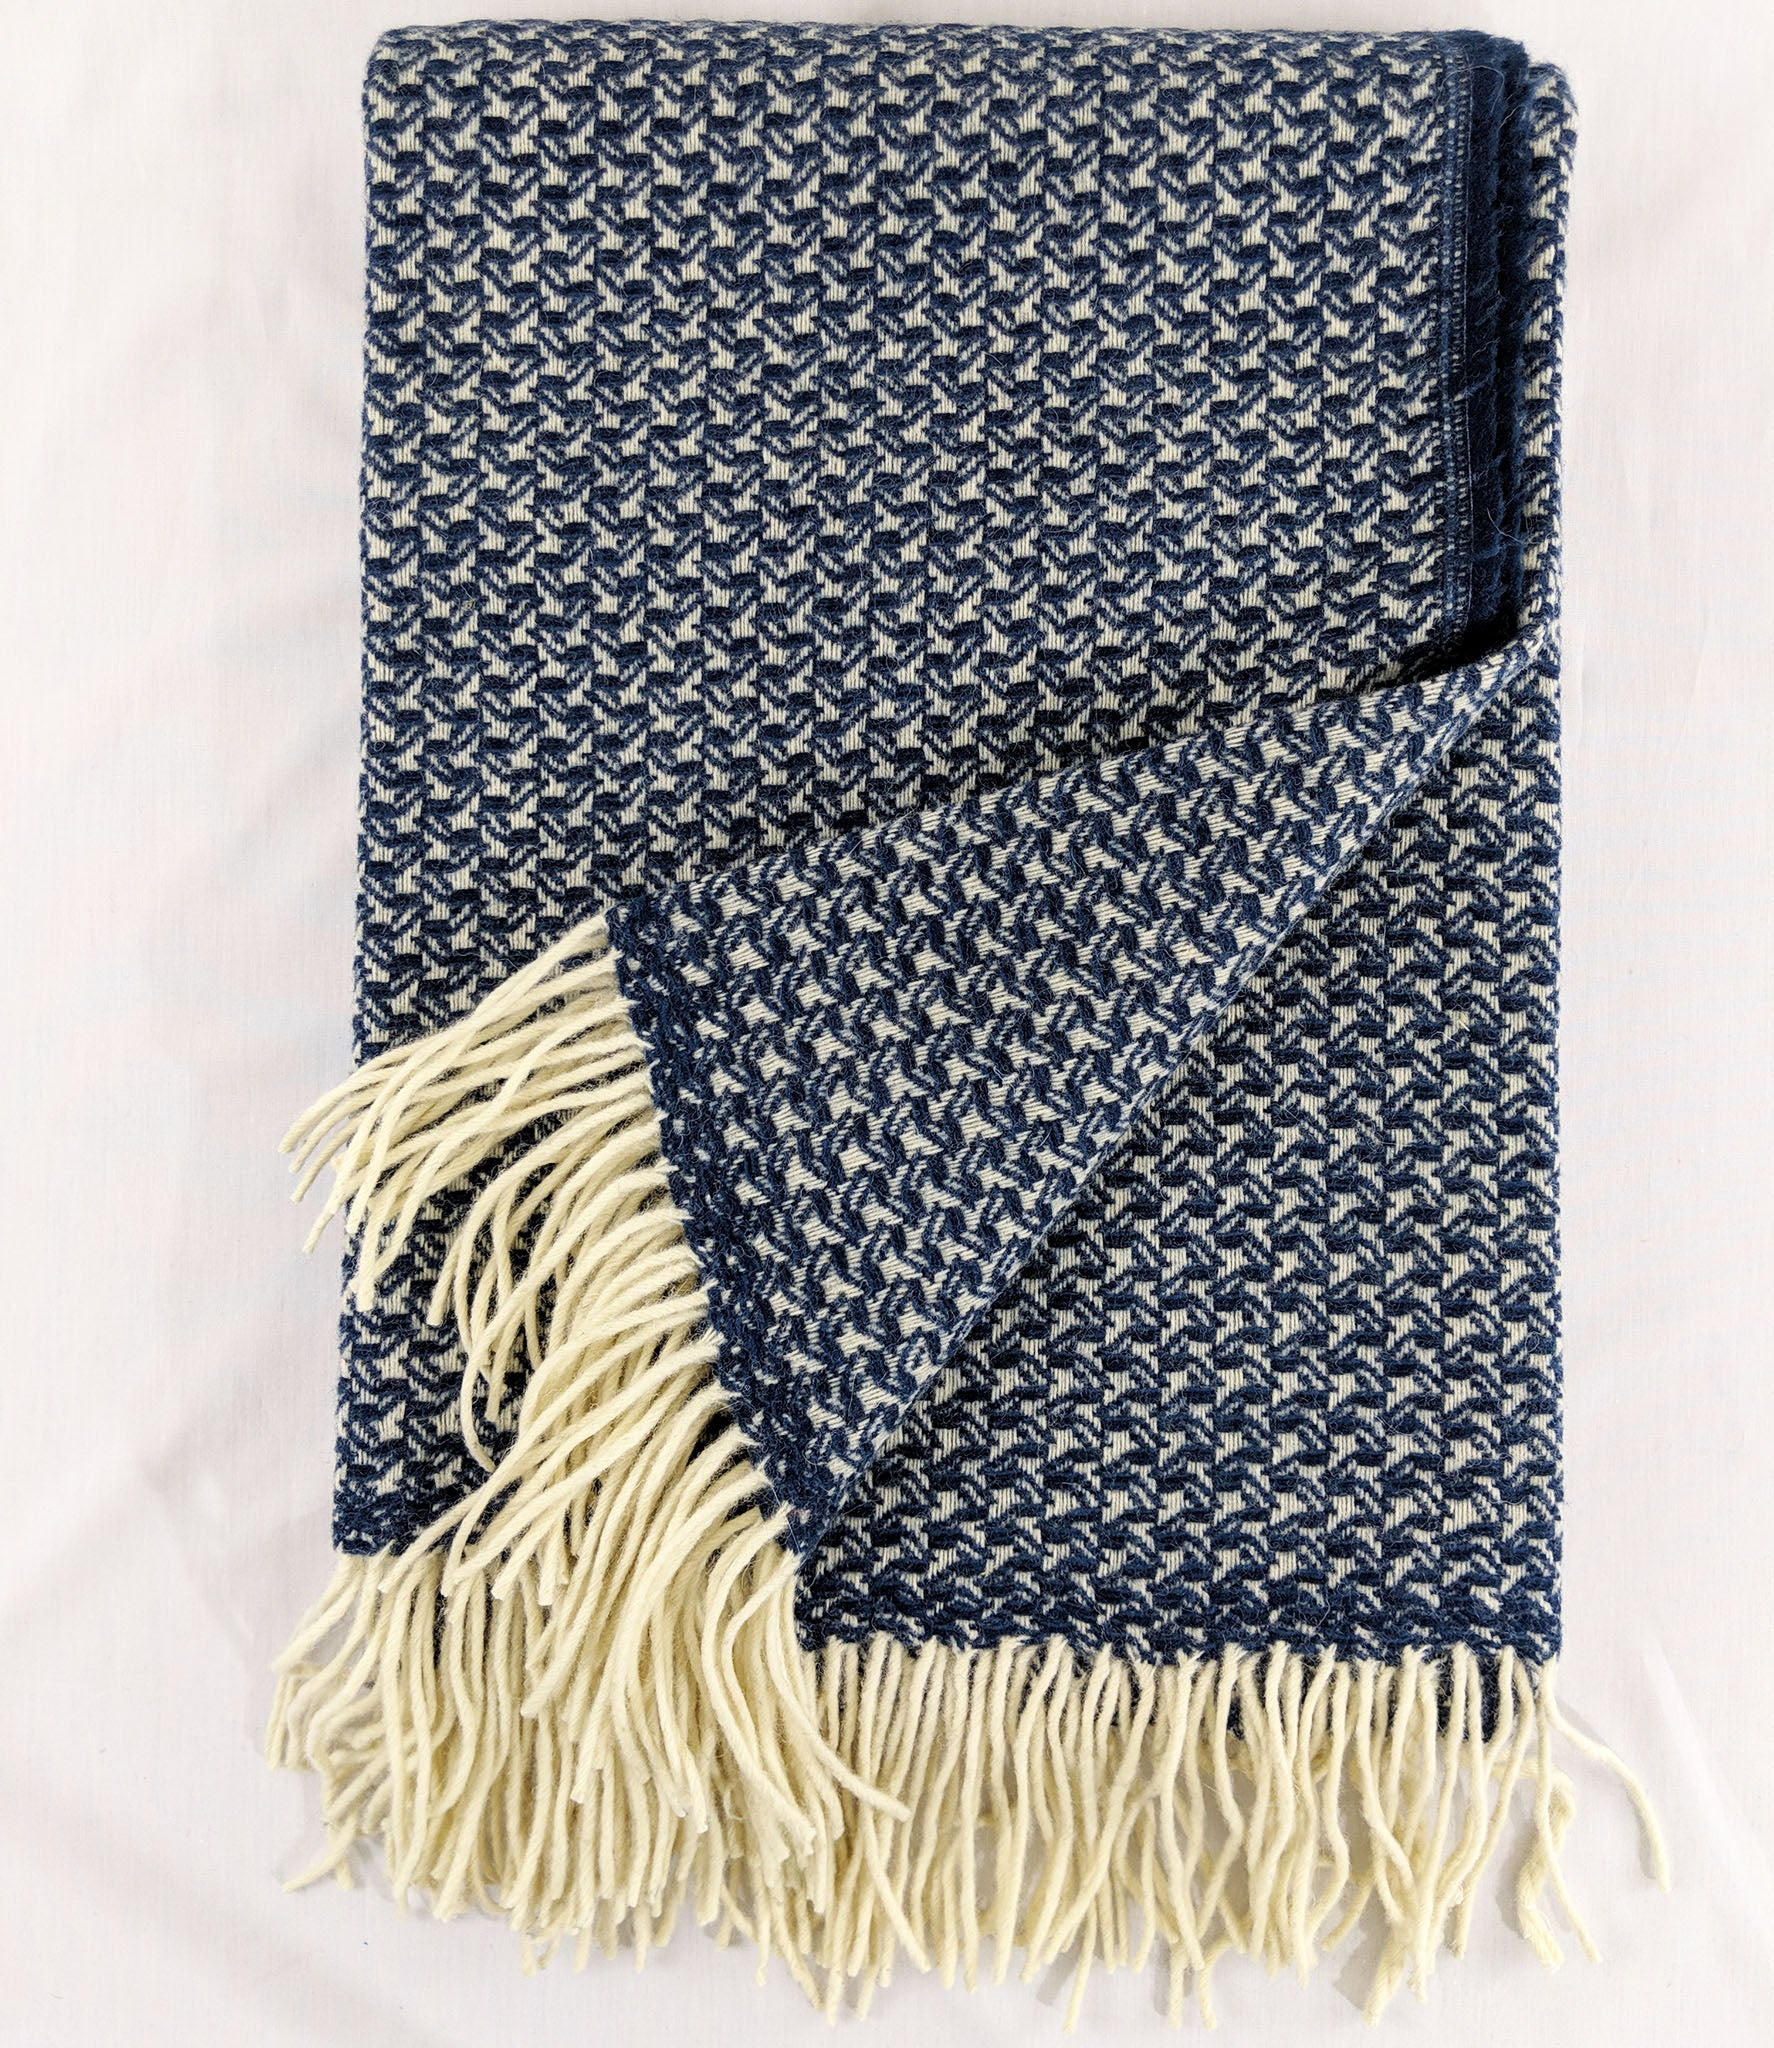 Dark blue Merino wool throw with tight wing pattern and fringe against white background